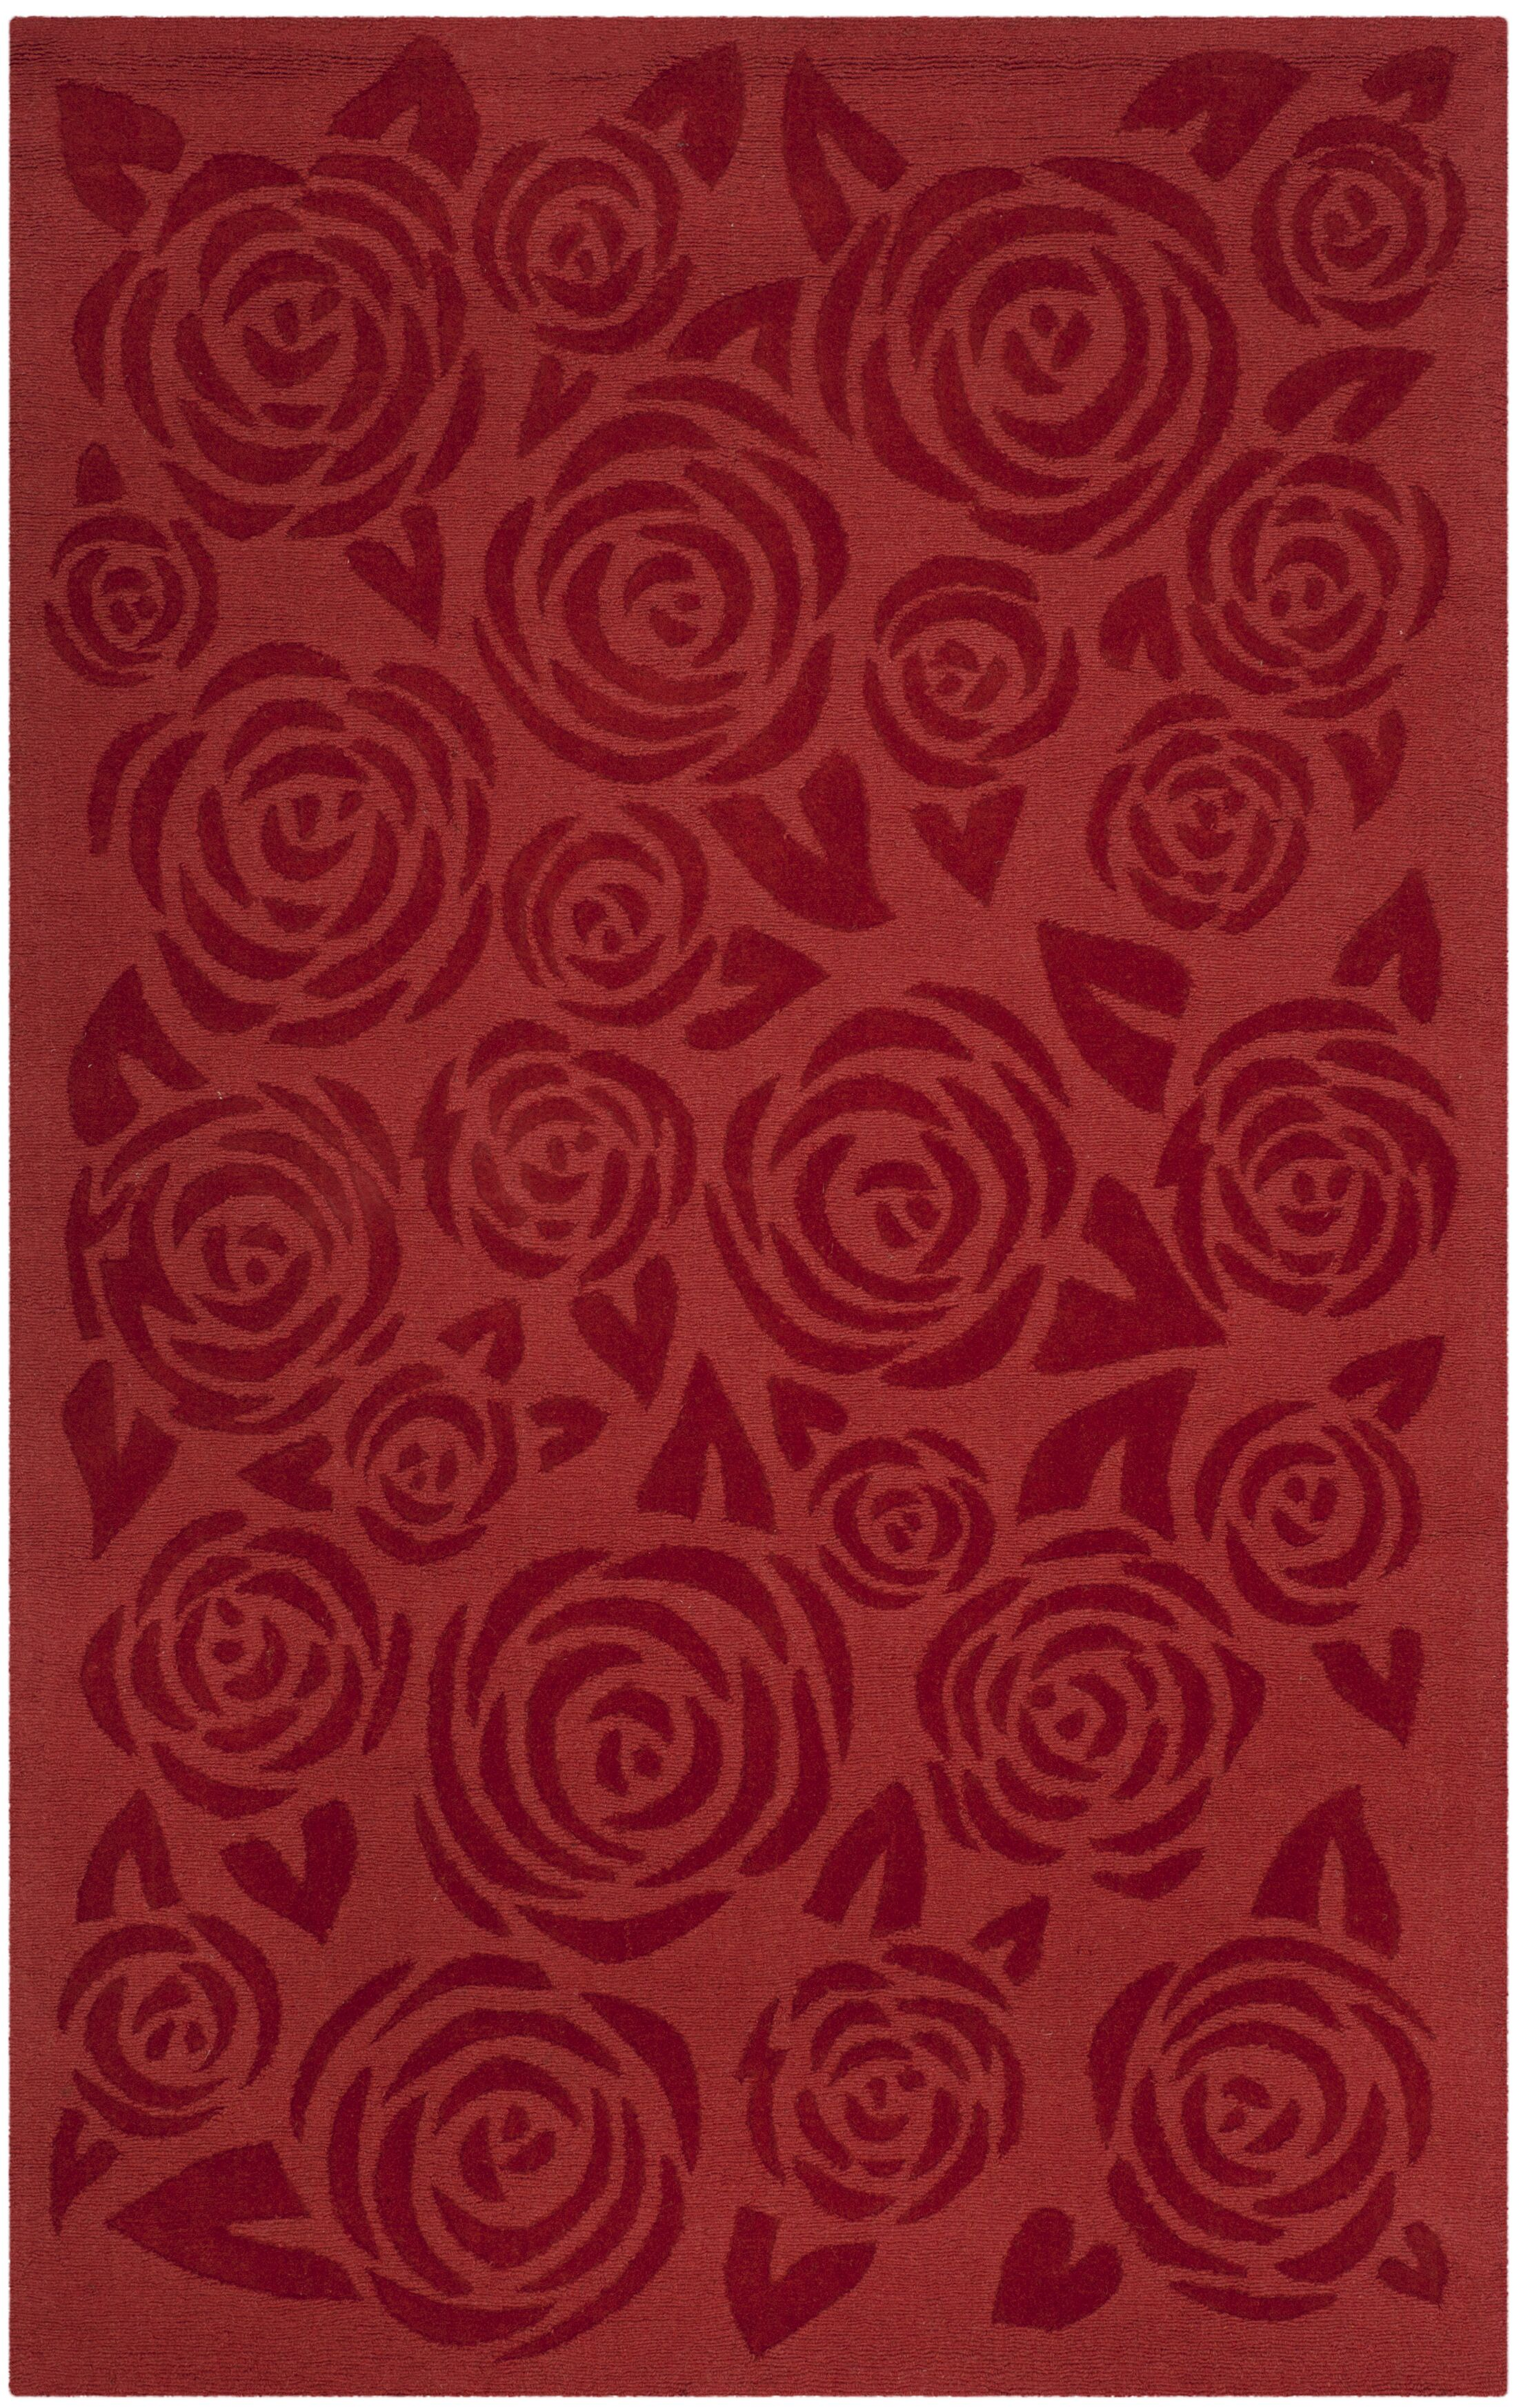 Block Rose Hand-Loomed Red Vermillon Area Rug Rug Size: Rectangle 5' x 8'